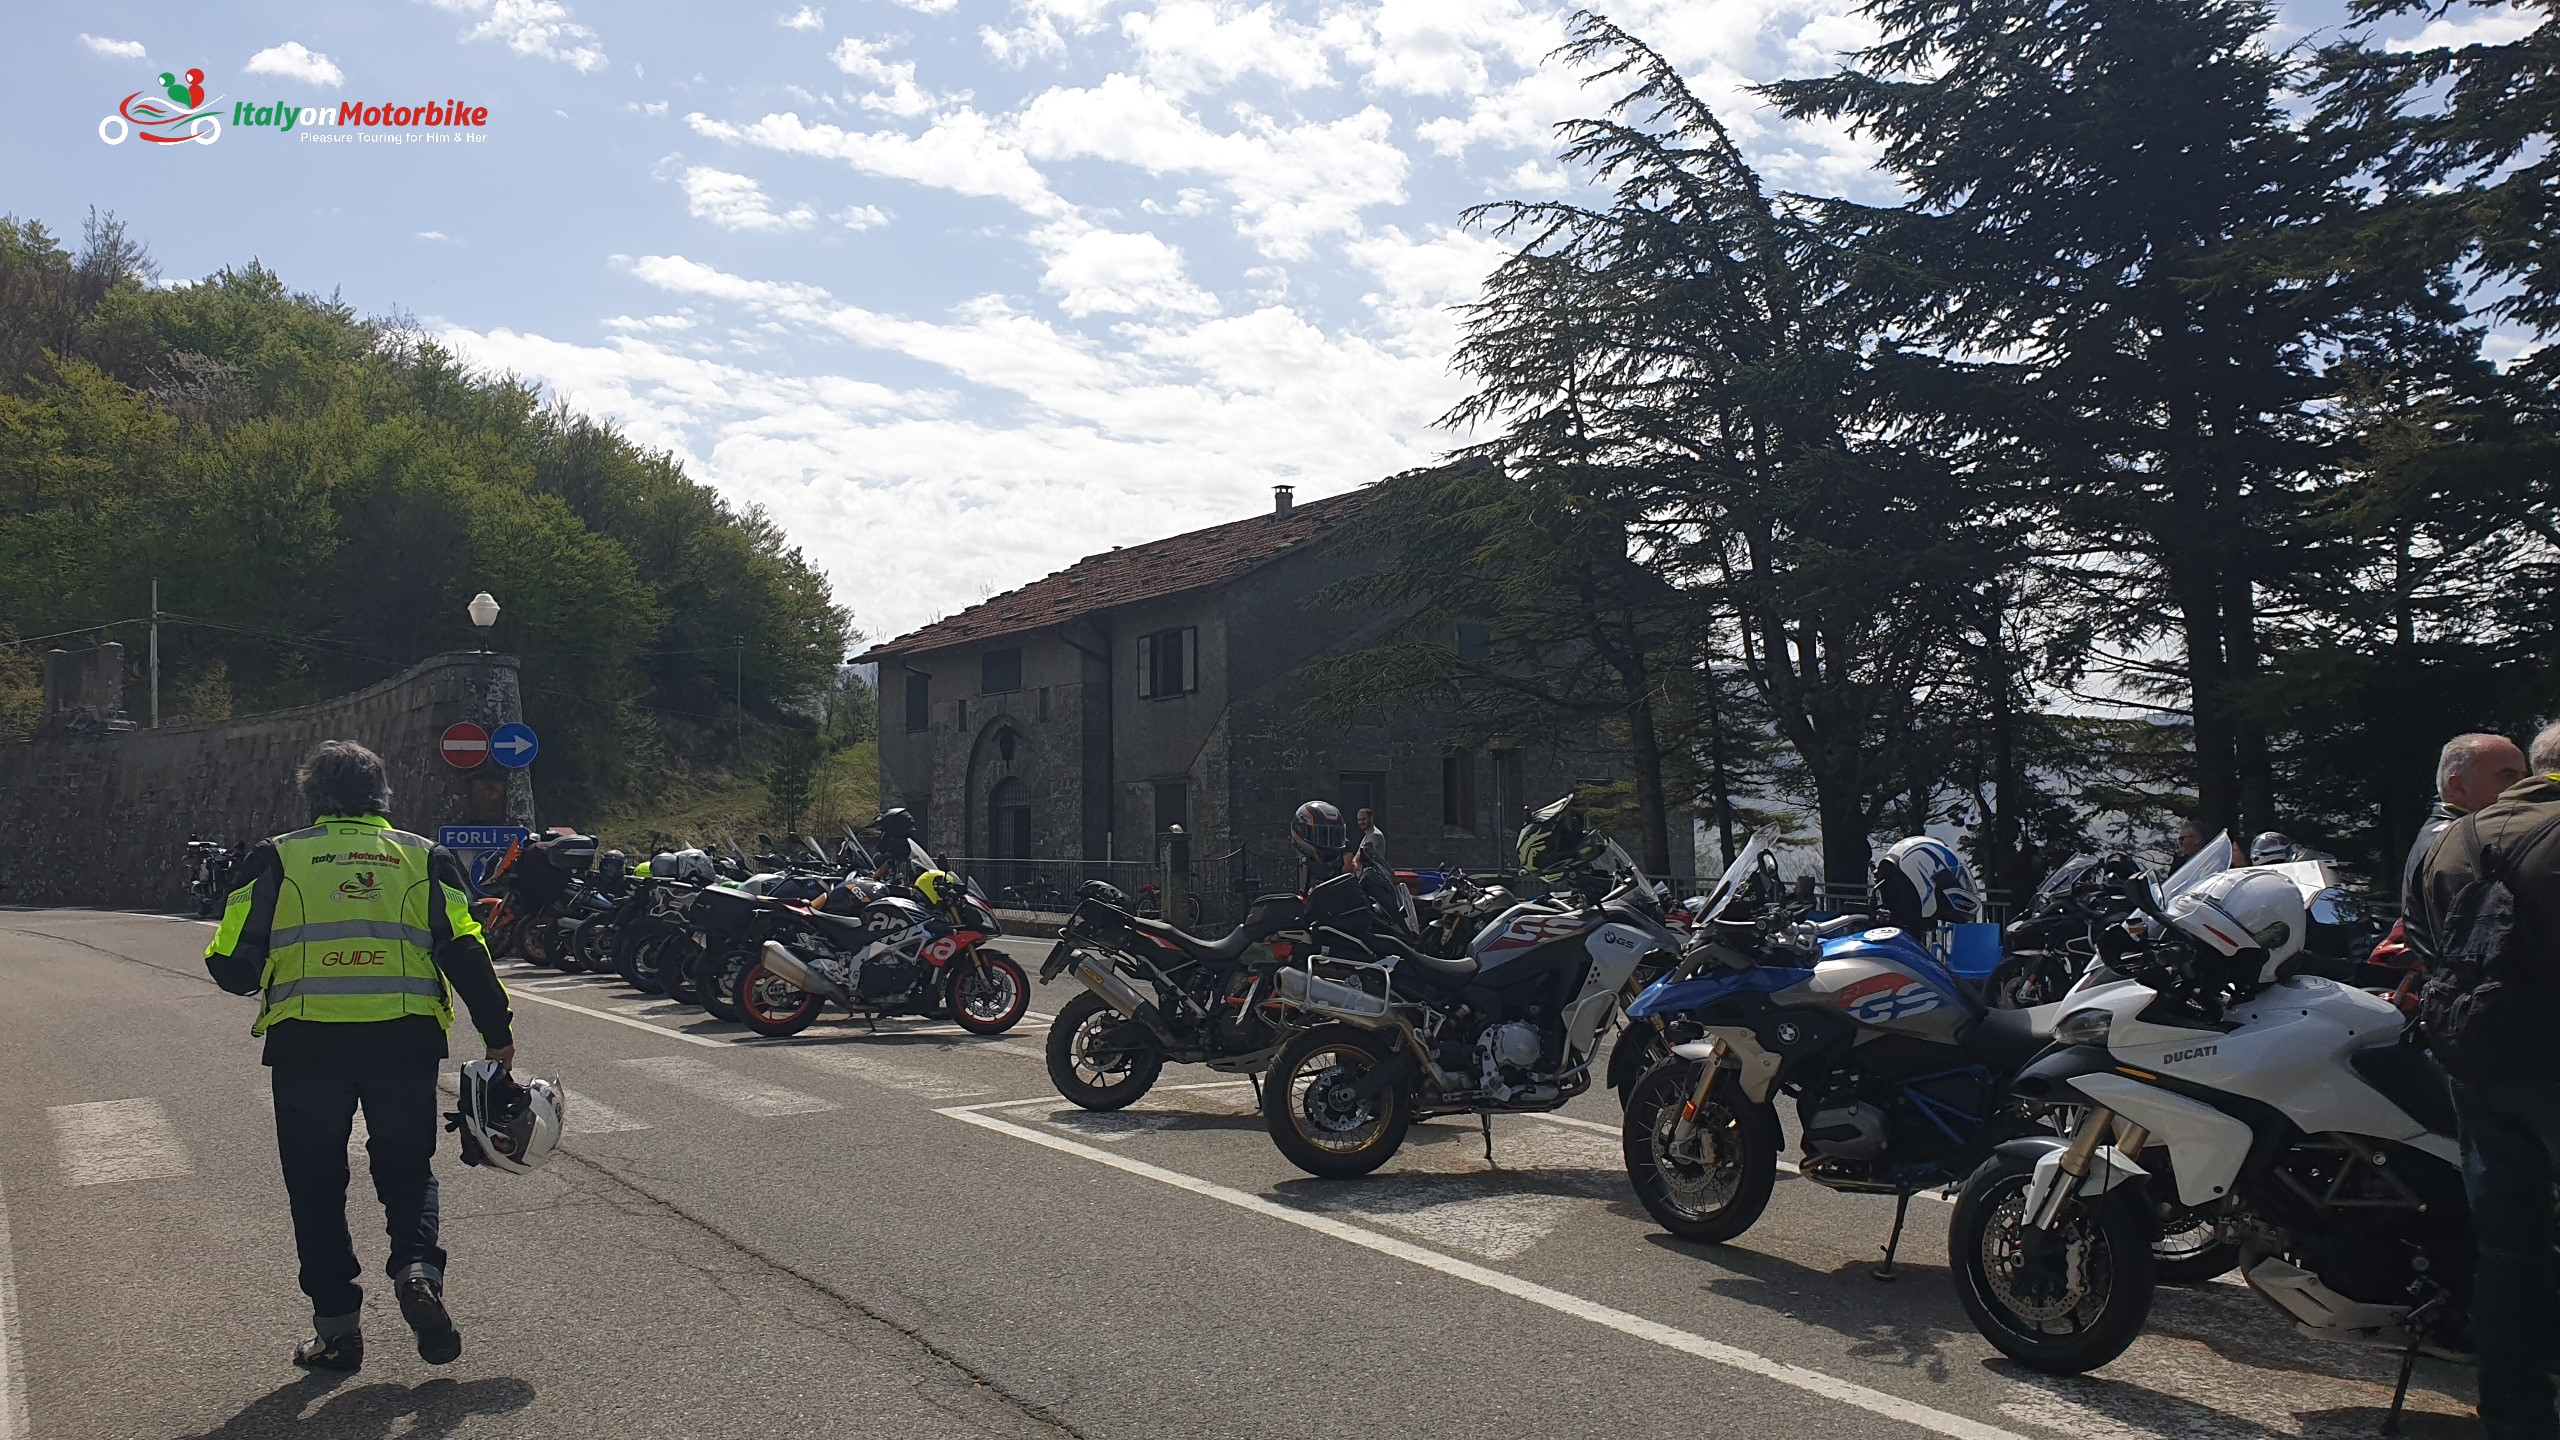 A selection of rented motorcycles in Tuscany Italy